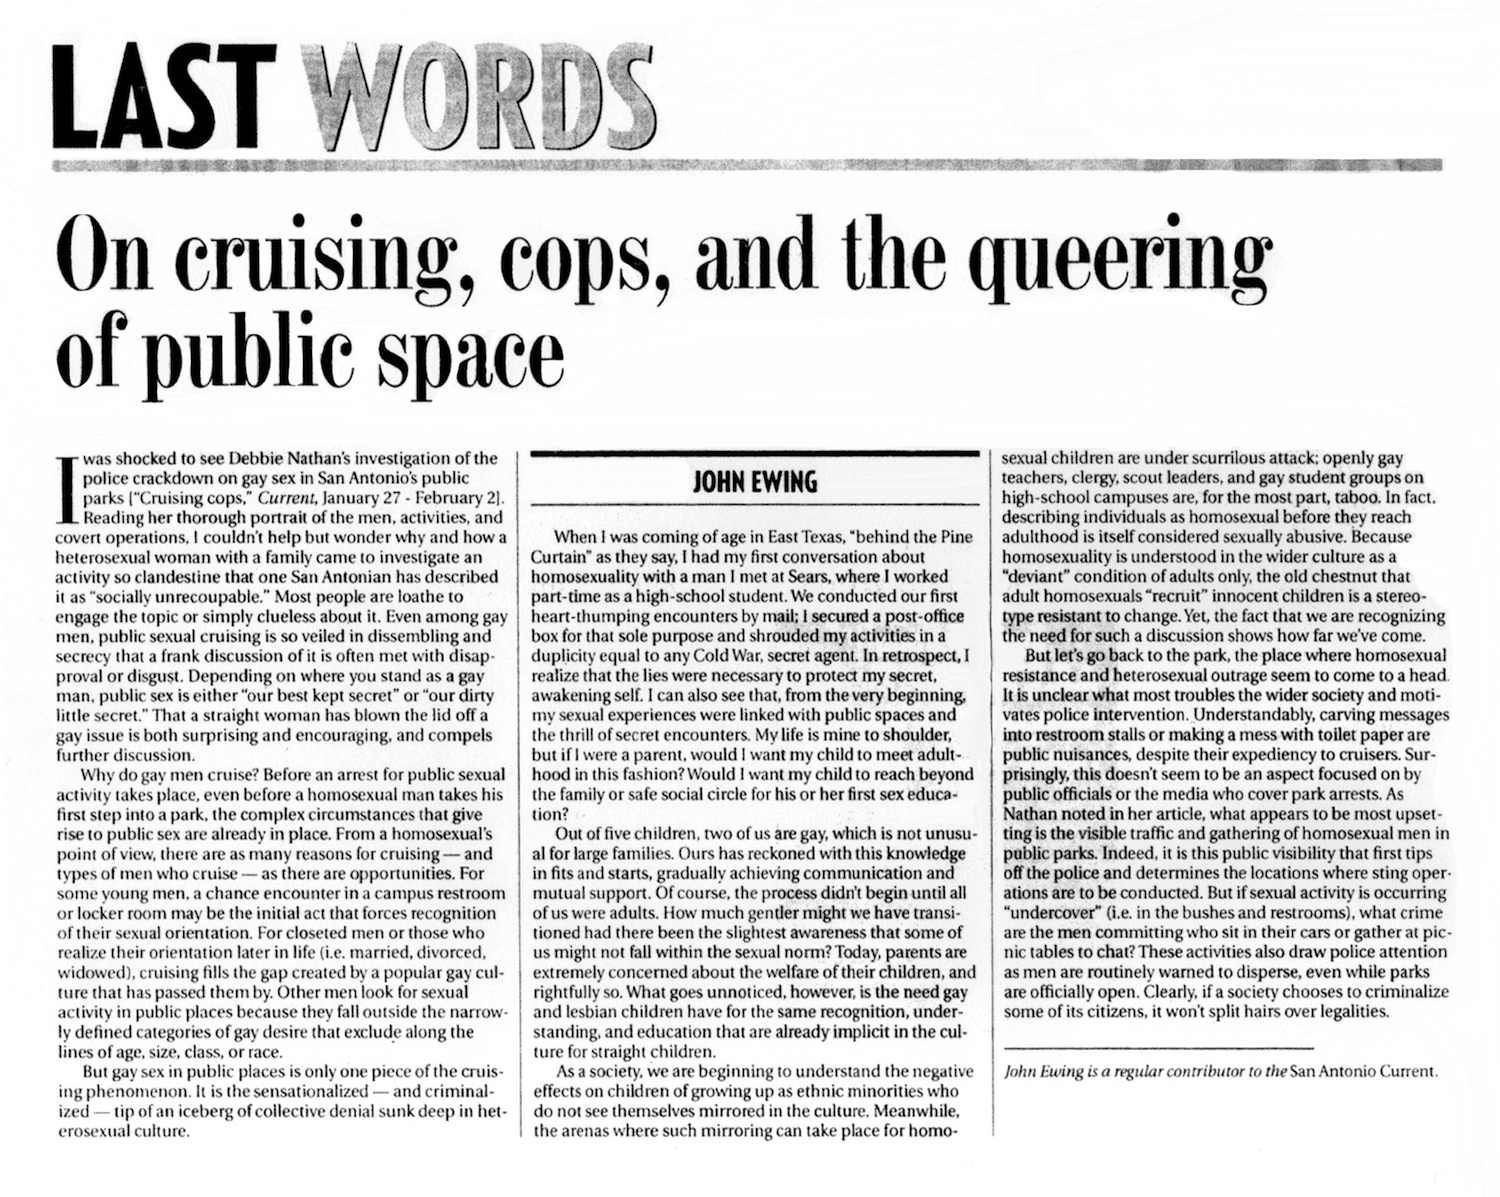 SC_2001_On Cruising, Cops, and the Queering of Public Space